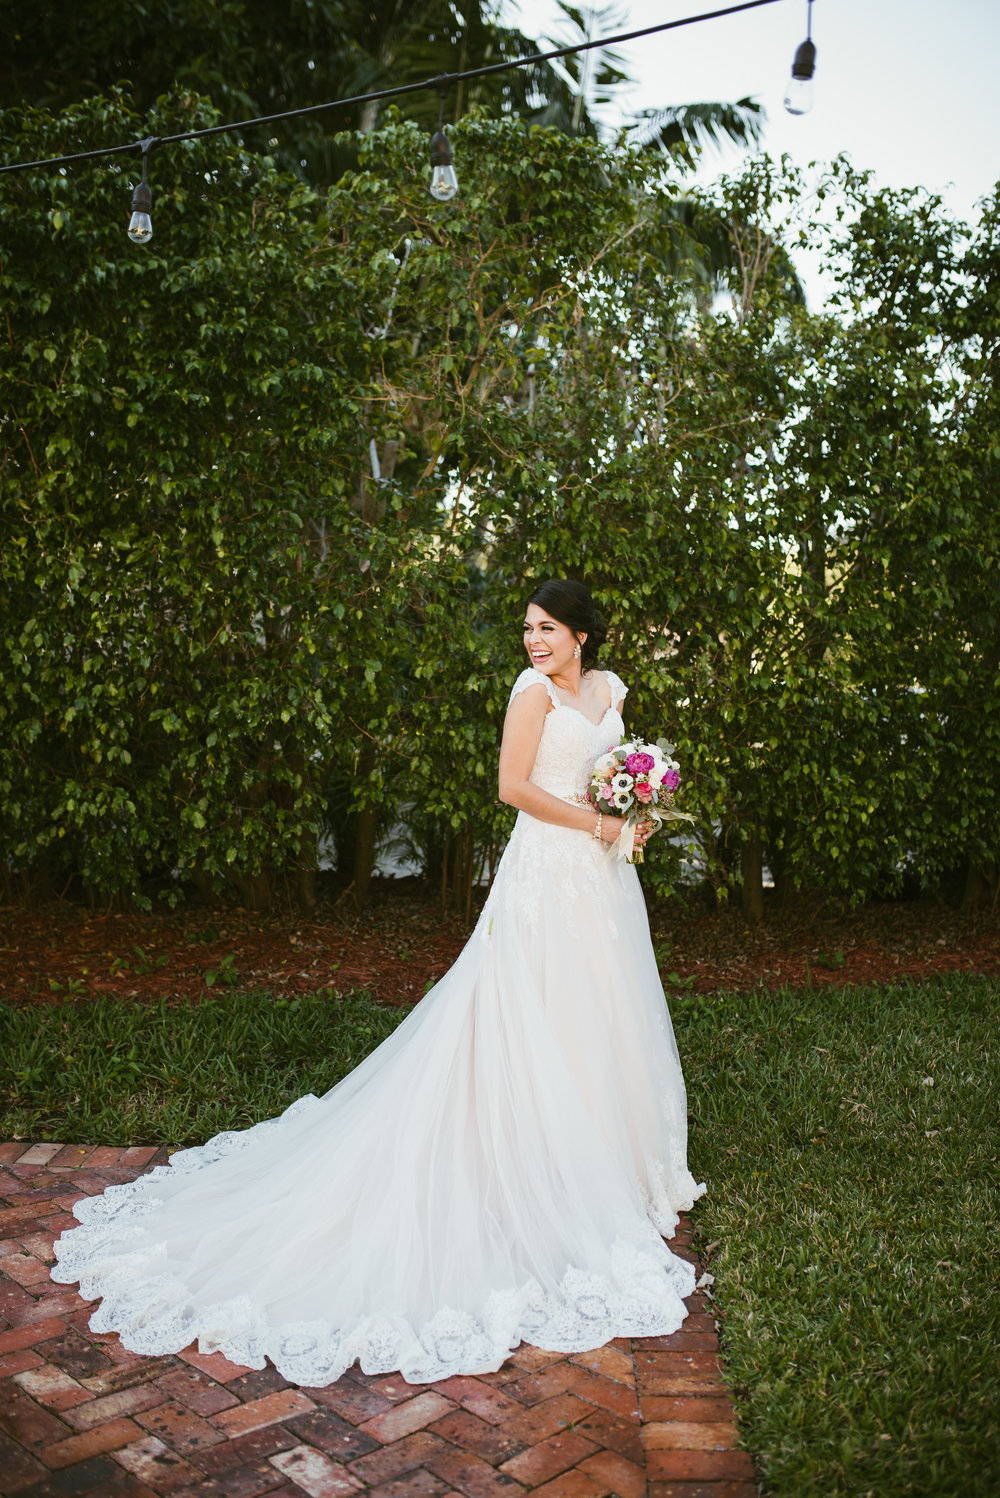 Miami Wedding Photographer - Miami Wedding - Coral Gables Country Club Wedding